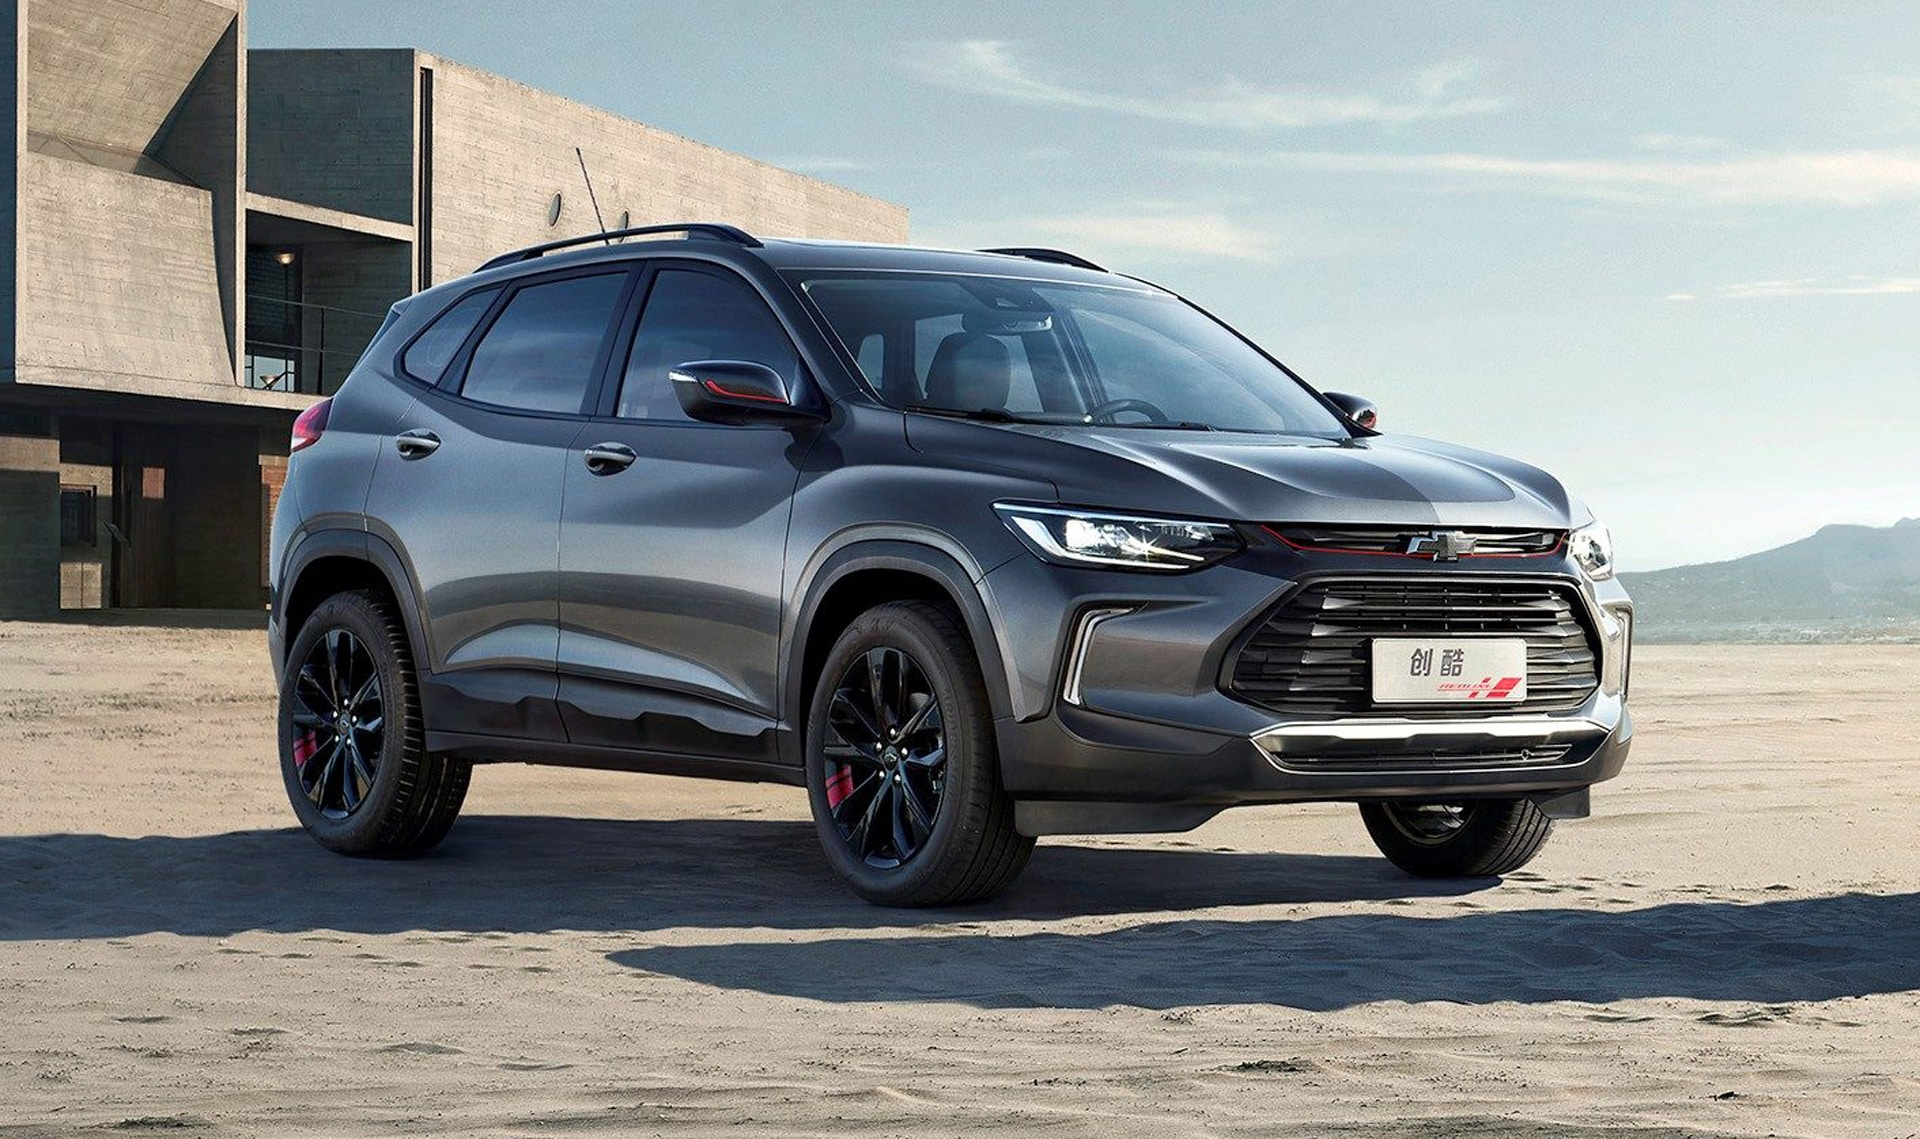 54 The Best 2020 Chevy Trailblazer Concept